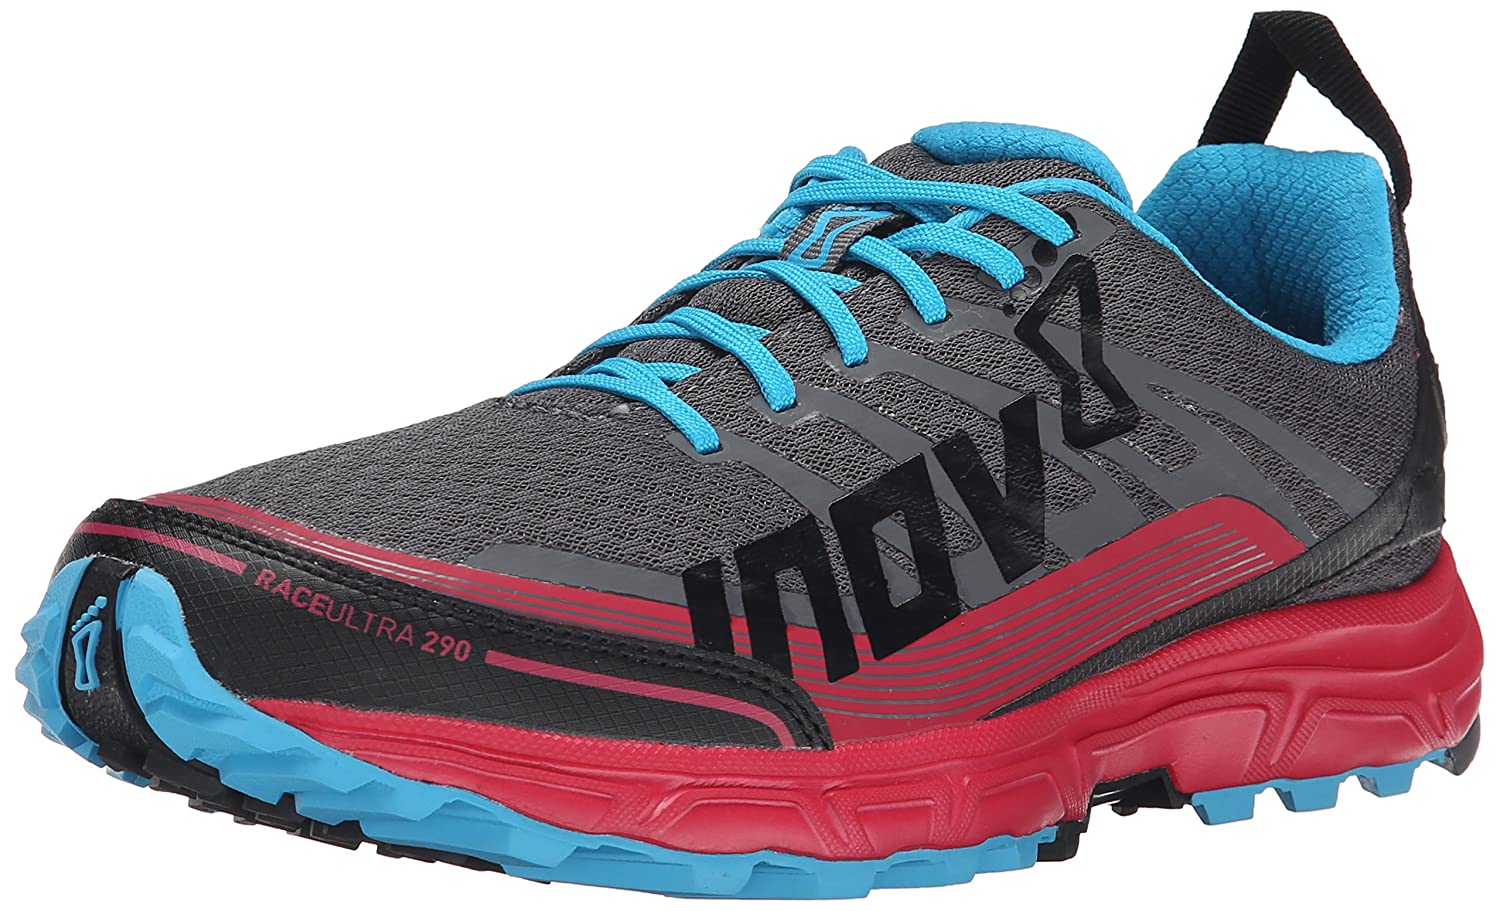 Inov-8 Women's Race Ultra 290 Trail Running Shoe B00QUTXDF4 7.5 B(M) US|Grey/Berry/Blue